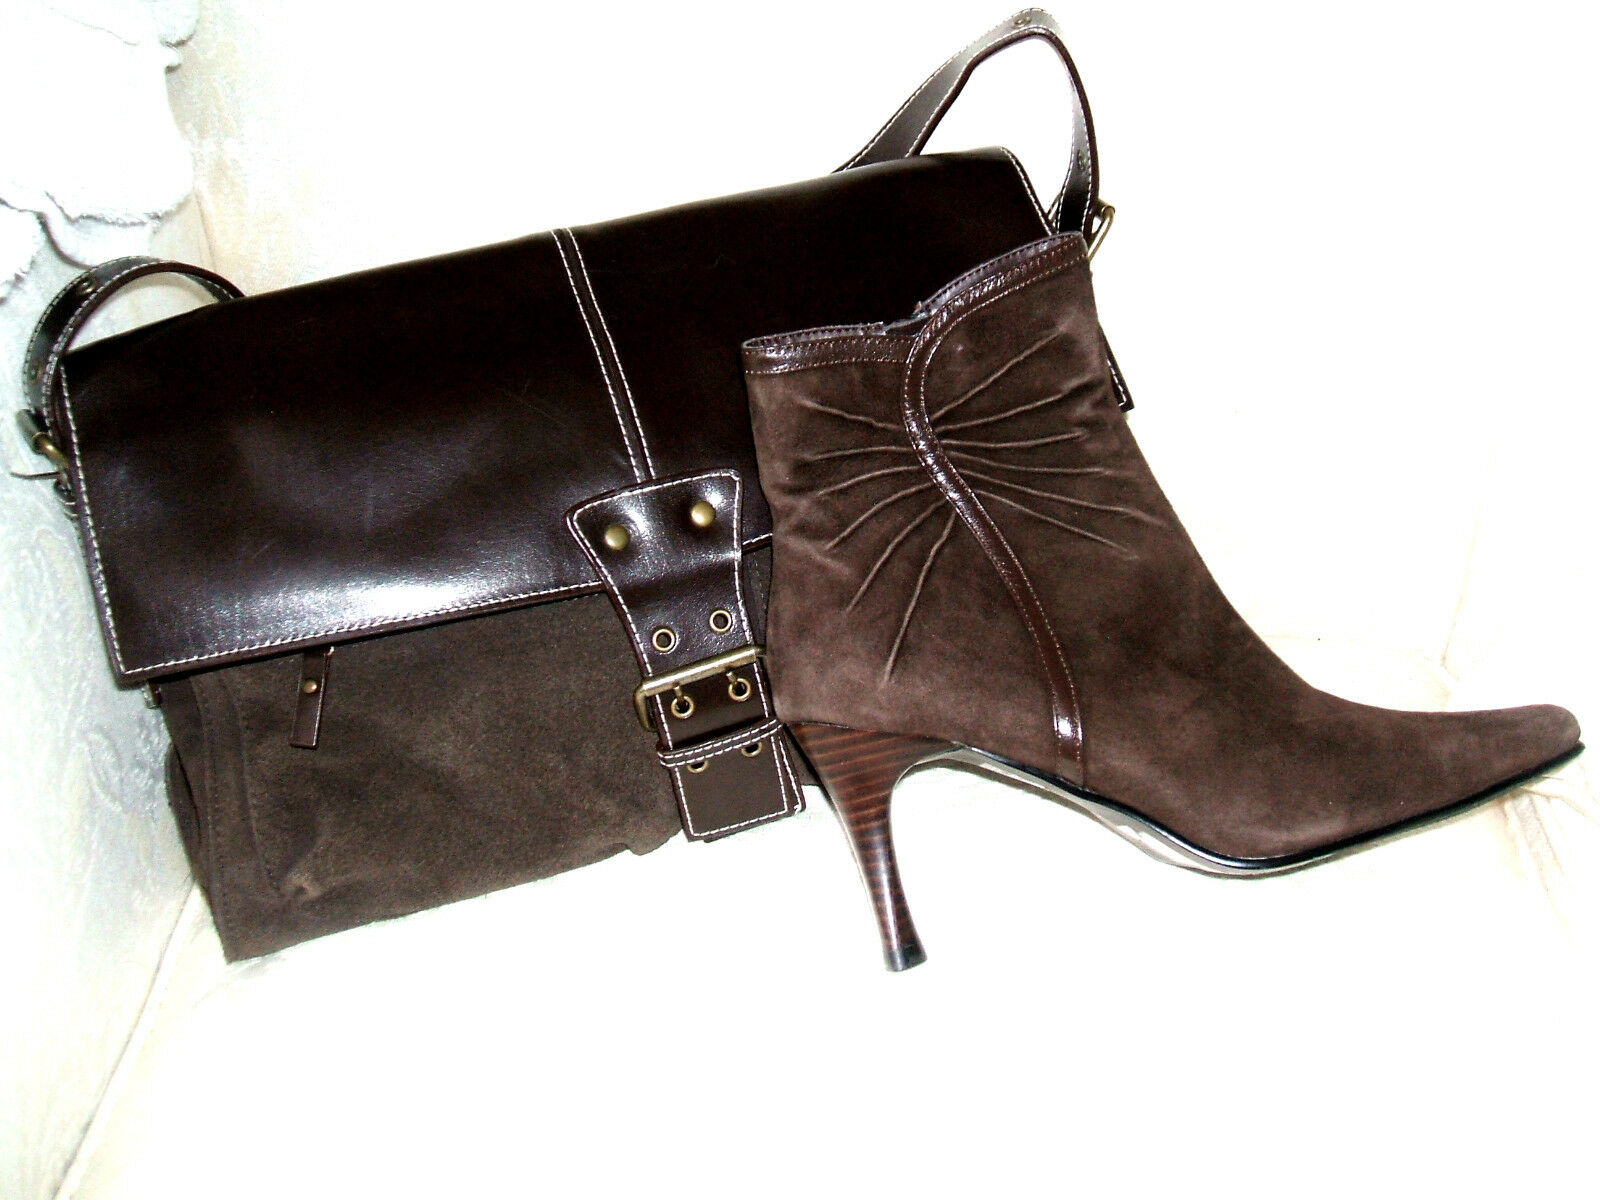 NEW LOTUS SIZE 5 38 BROWN REAL SUEDE SHOULDER LEATHER ANKLE Stiefel & SHOULDER SUEDE HANDBAG BAG 37d361